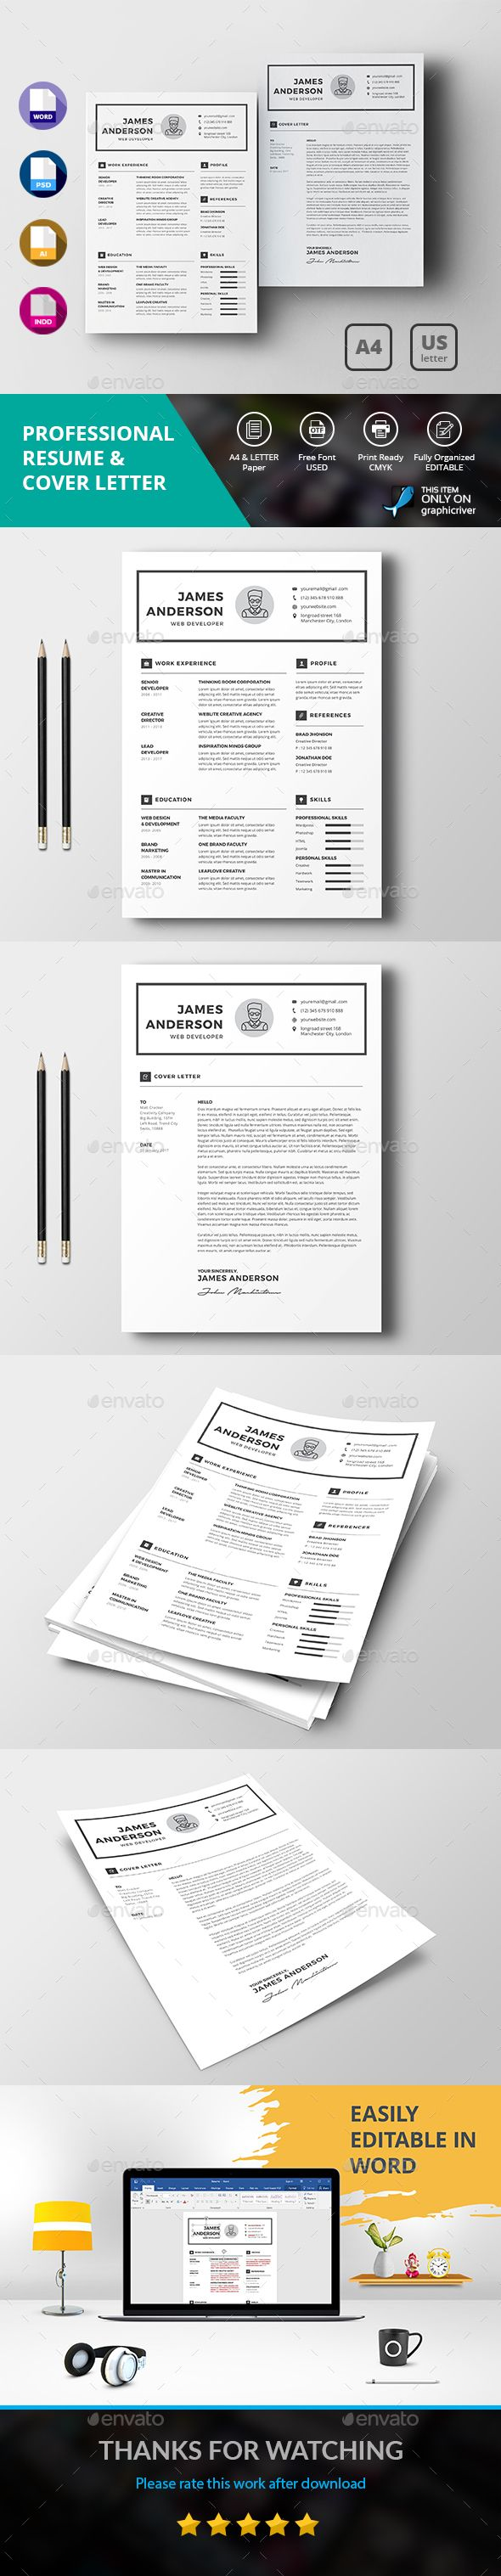 51 Best Resumes Images On Pinterest